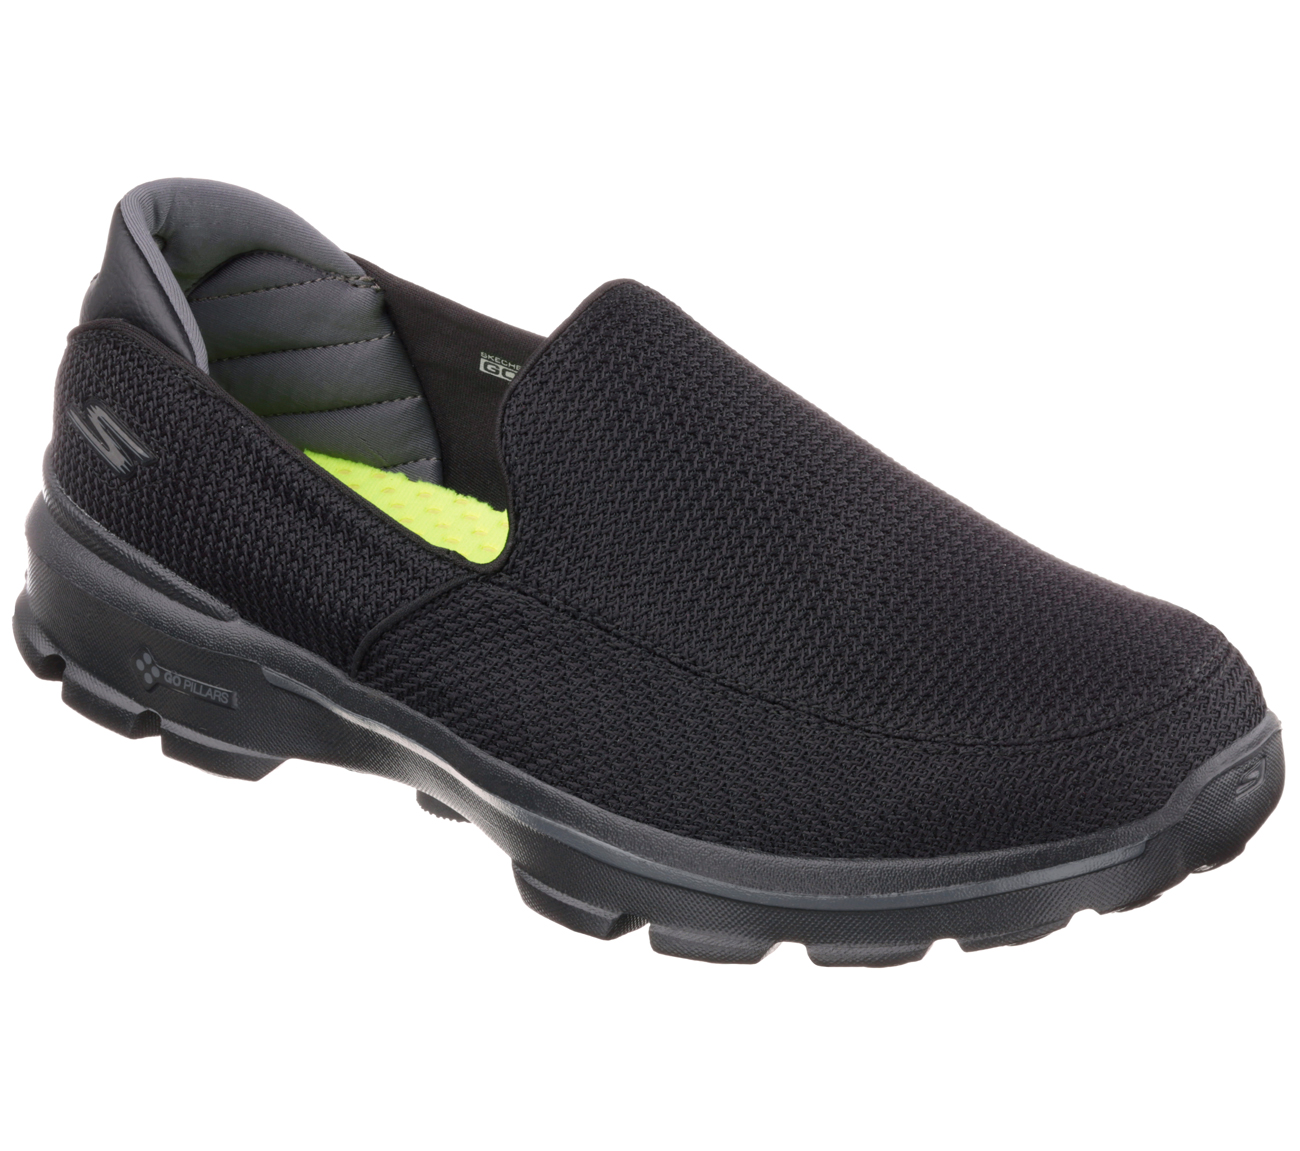 SKECHERS Men's Skechers GOwalk 3 - SKECHERS Canada